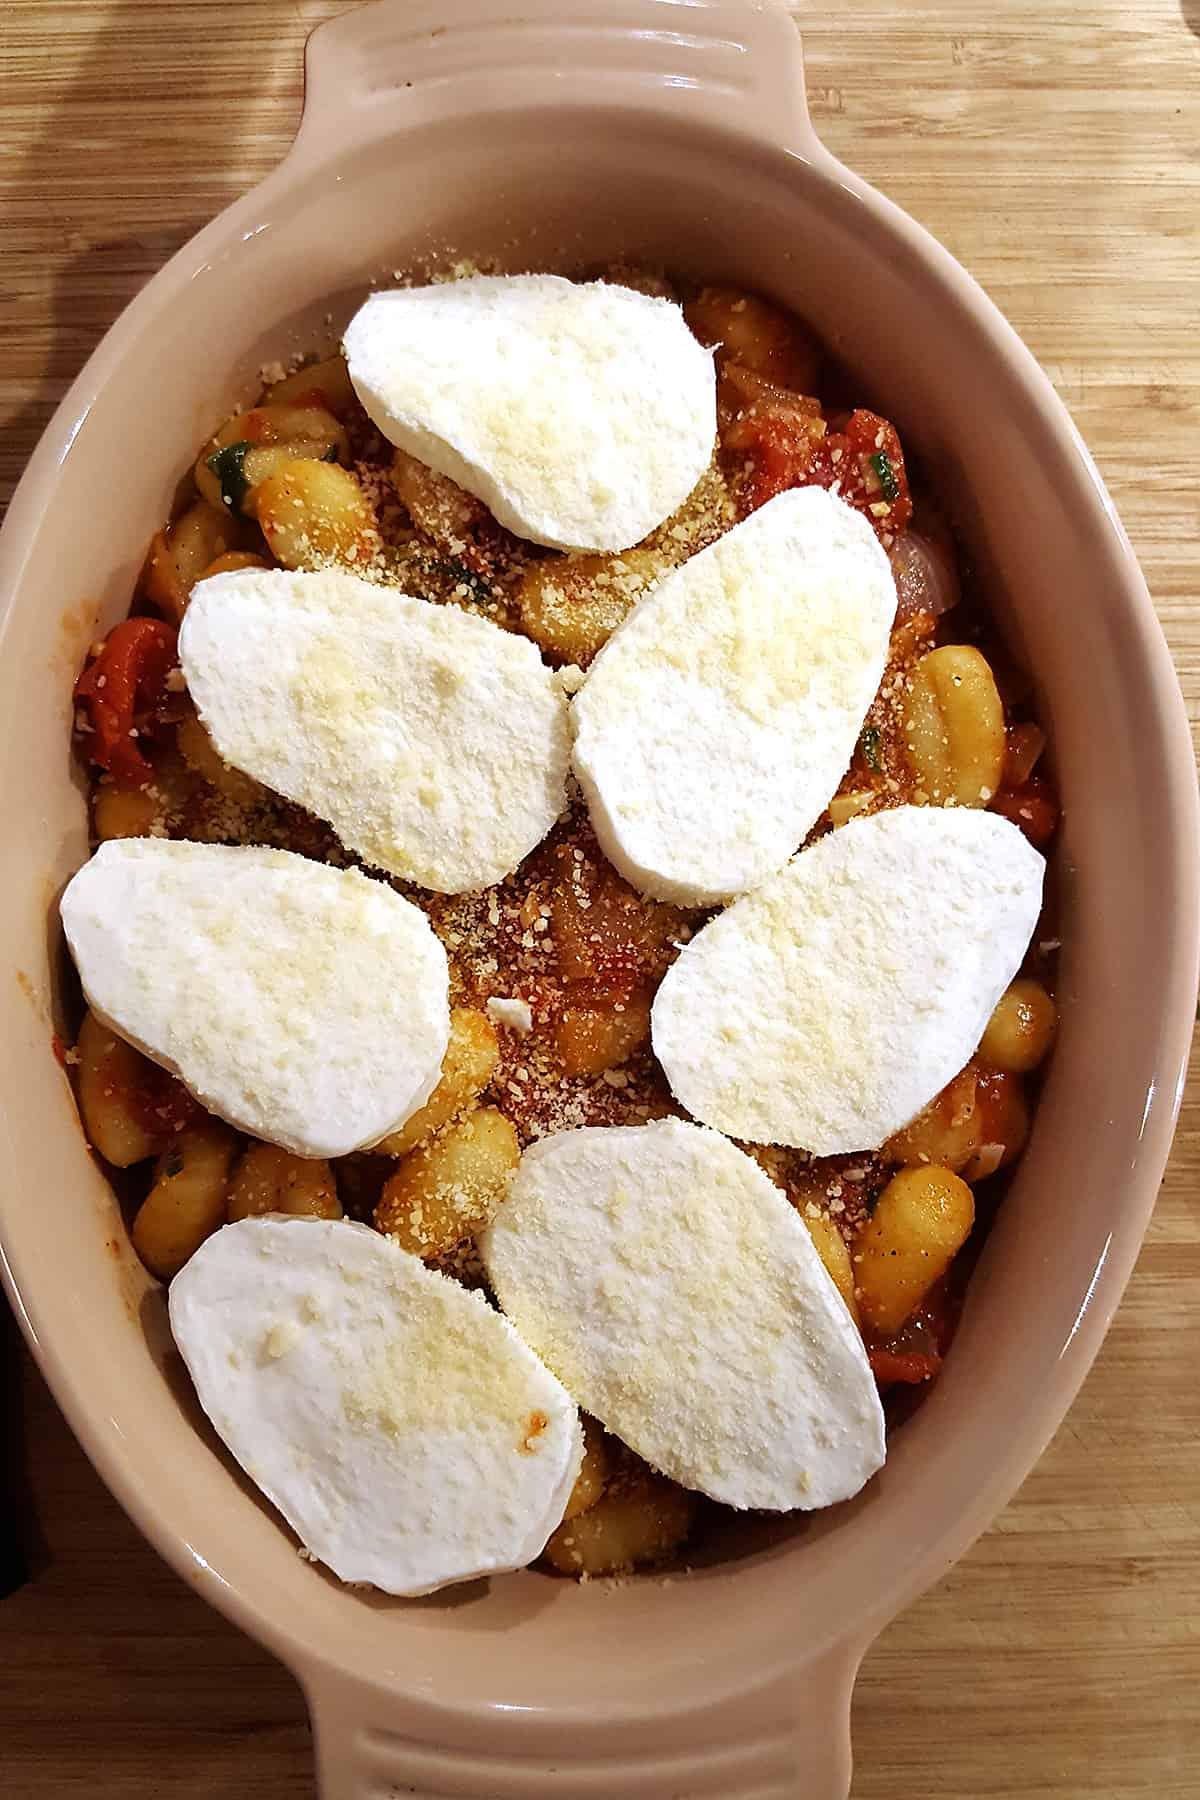 Gnocchi and tomato sauce topped with mozzarella and Parmesan cheeses.